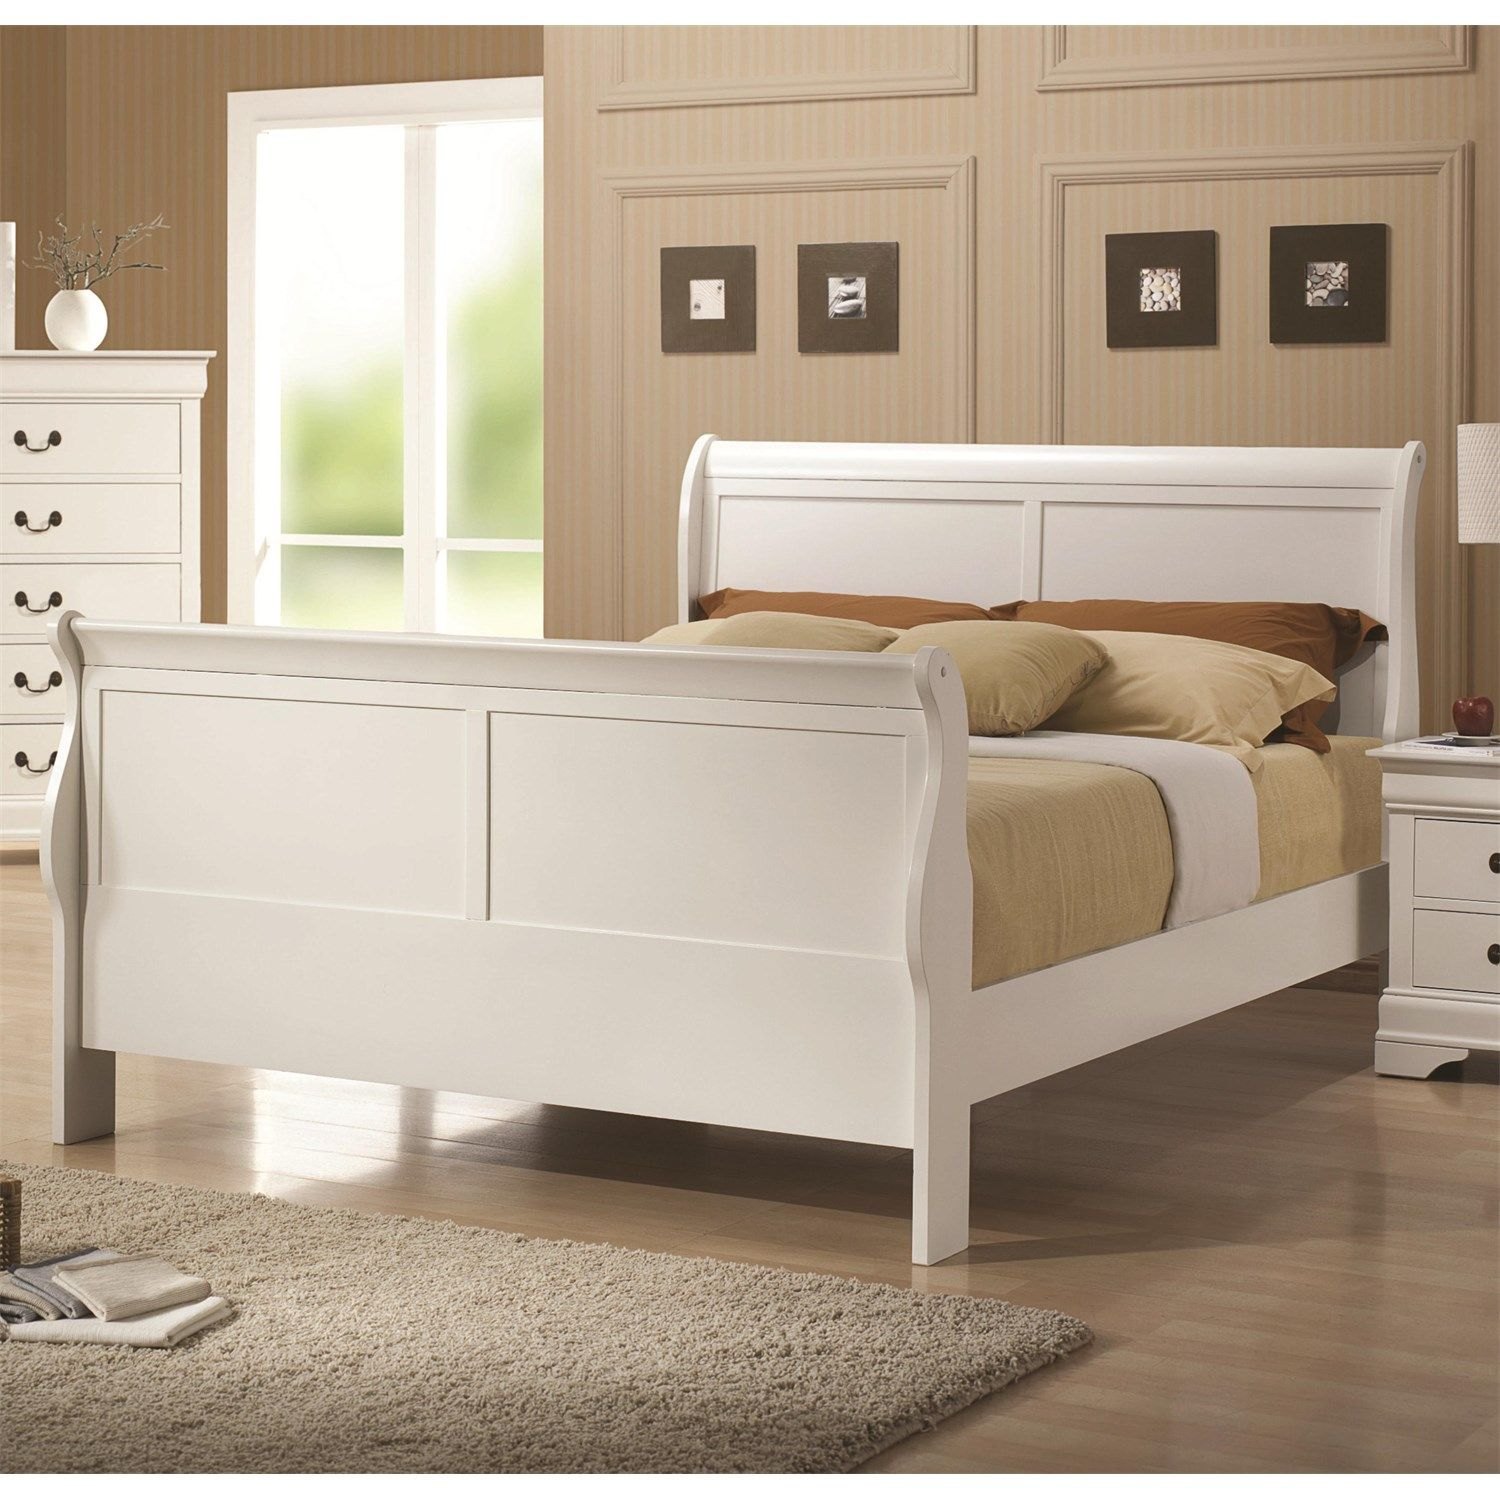 Coaster Furniture 204691F Full Sleigh Bed in White (With